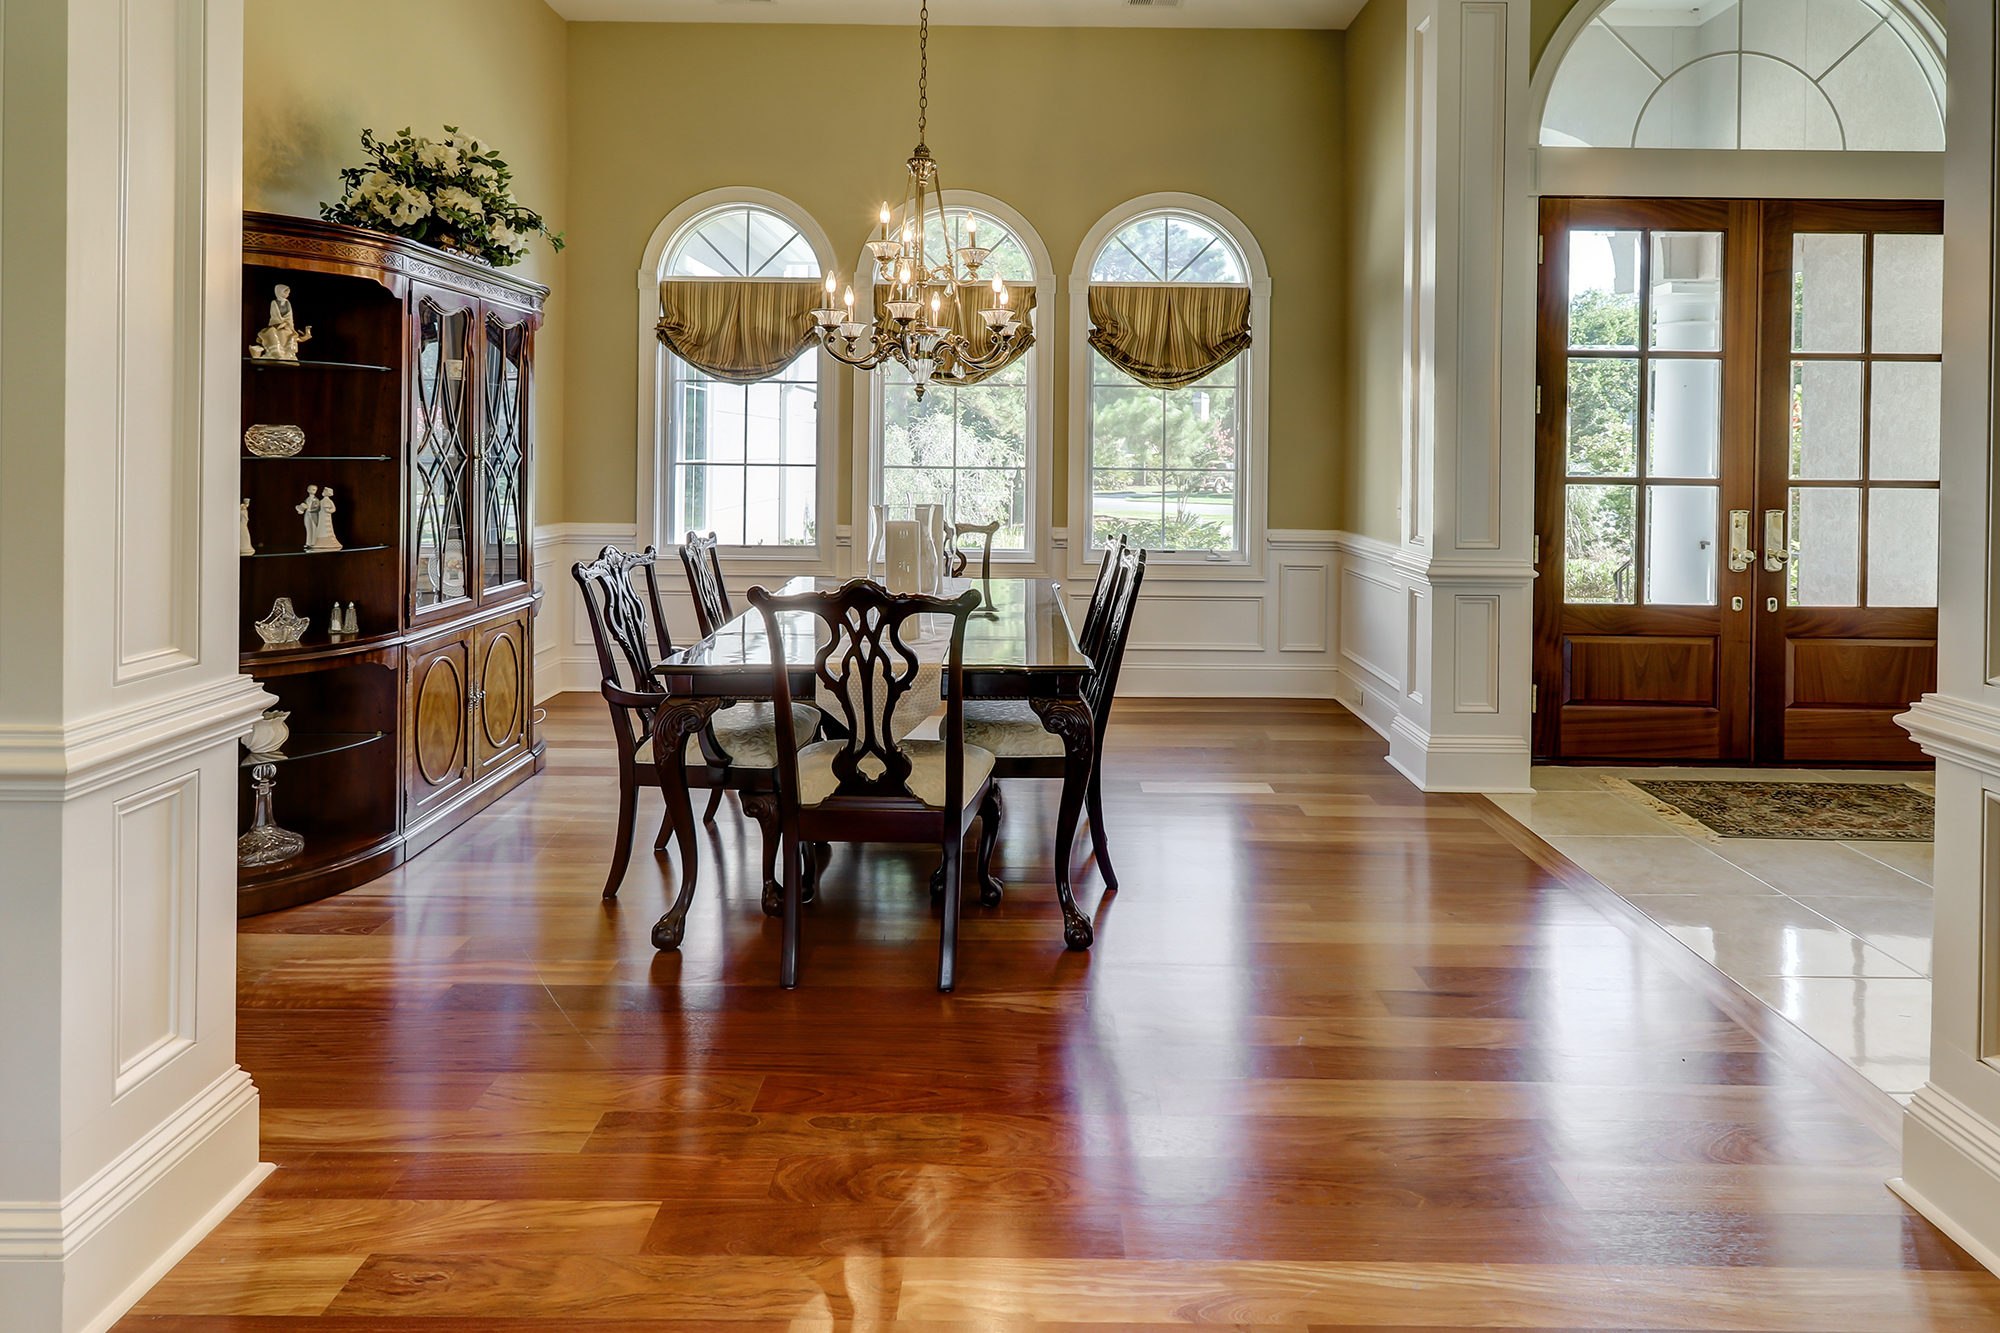 Dining Room in Like New Home on Hilton Head Island